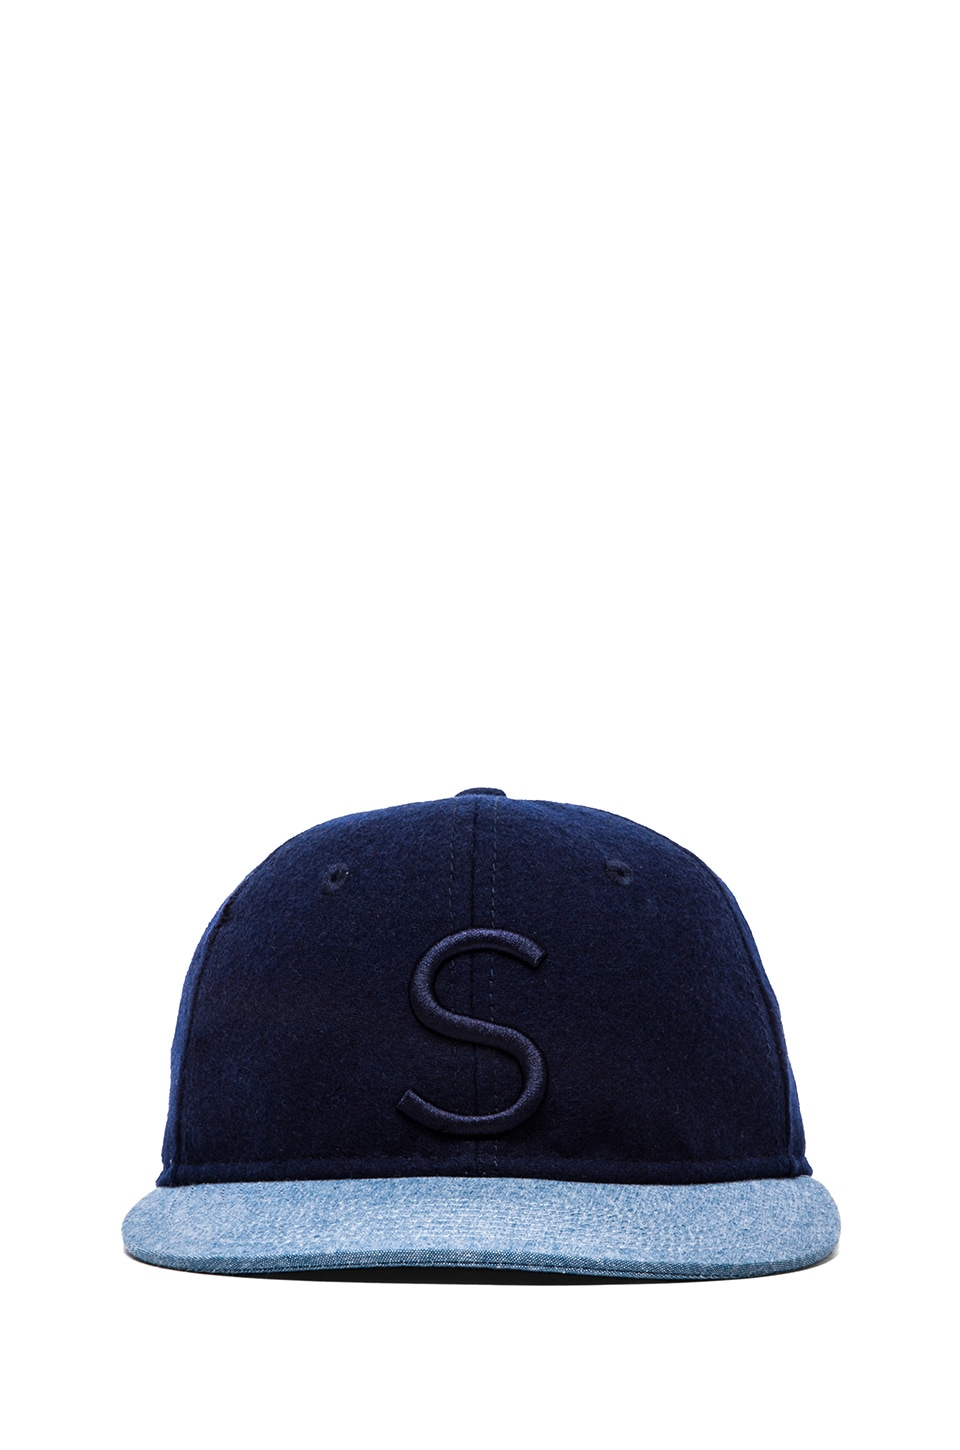 SATURDAYS NYC Rich Hat in Steel Blue